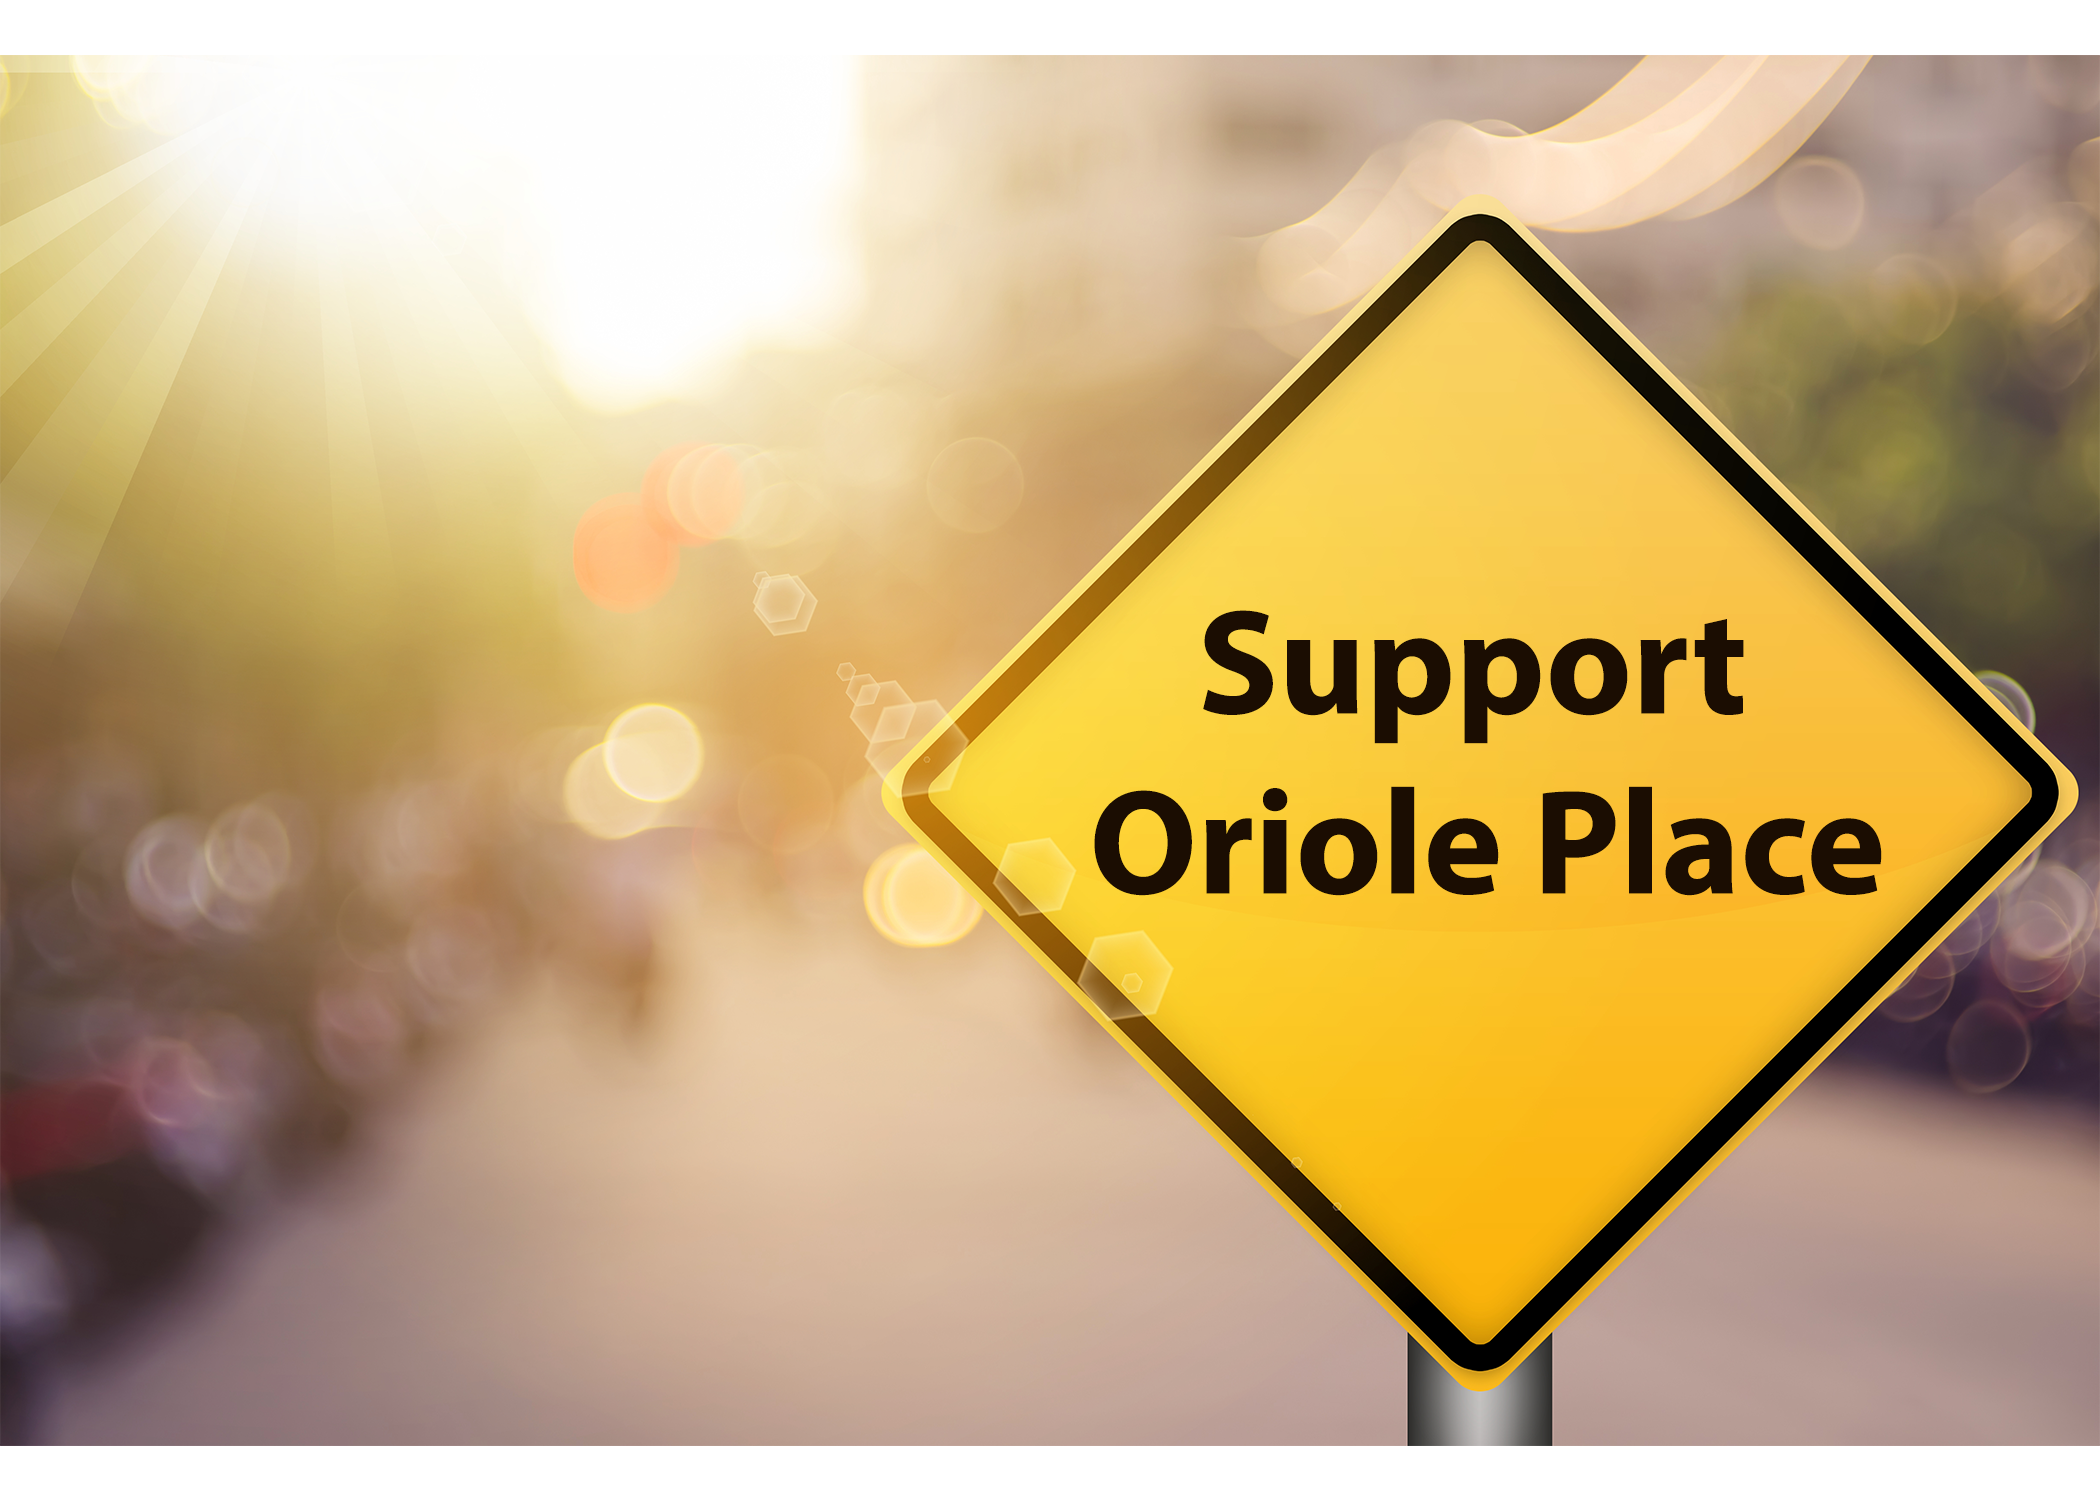 Support Oriole Place - Ready to take the next step? You can support our cause, by signing our petition.